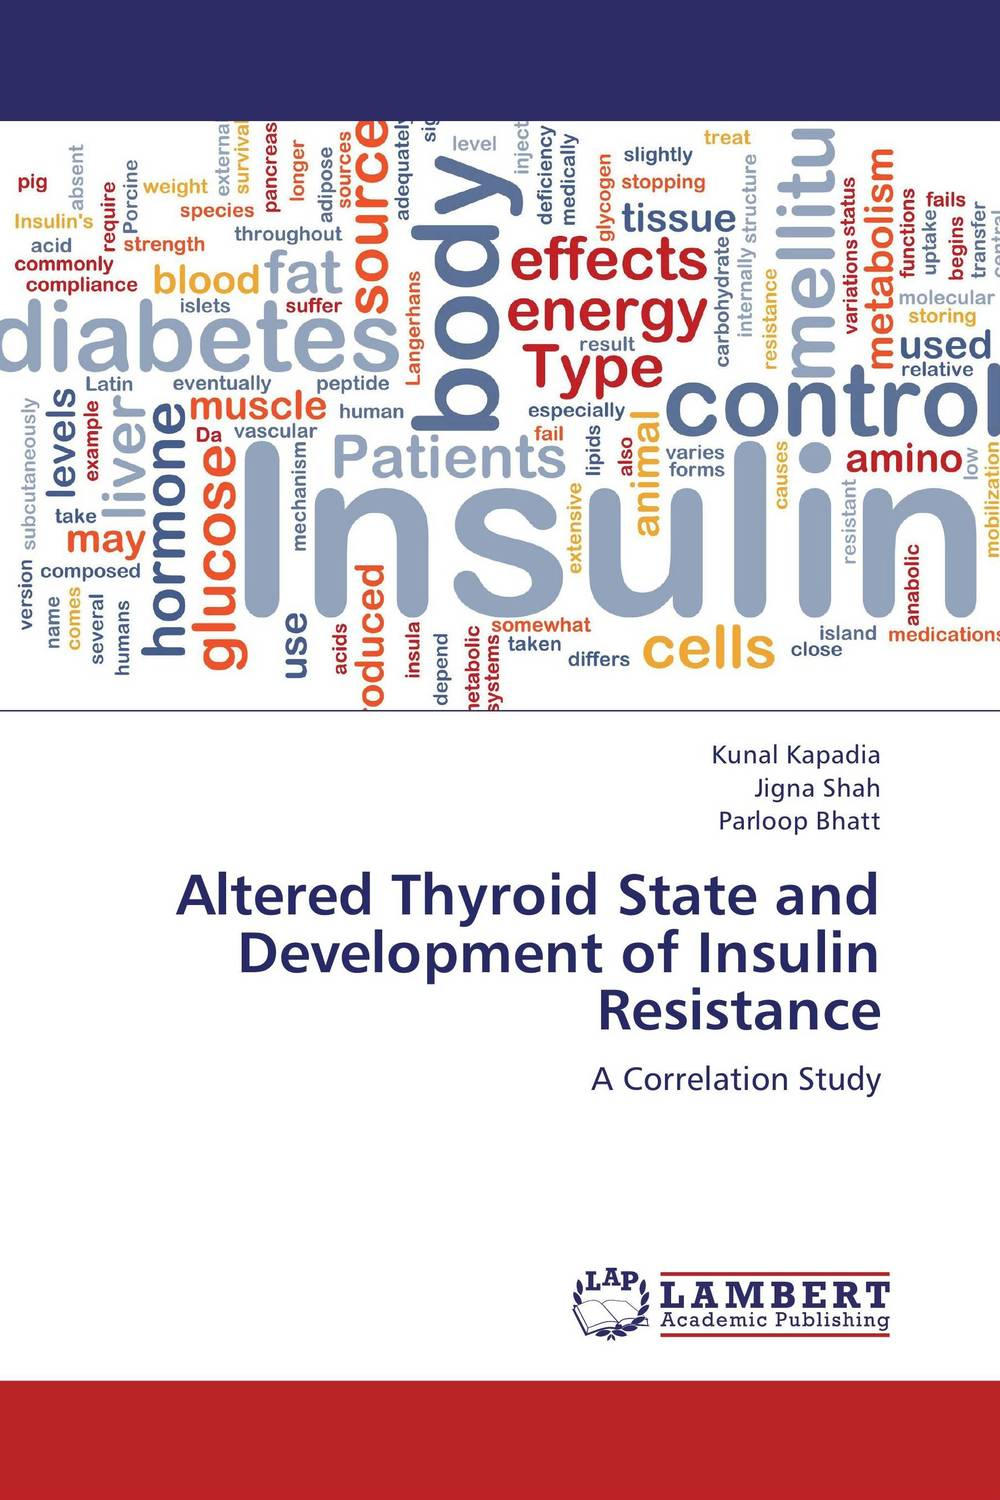 Altered Thyroid State and Development of Insulin Resistance insulin resistance using homa model in obstructive sleep apnea